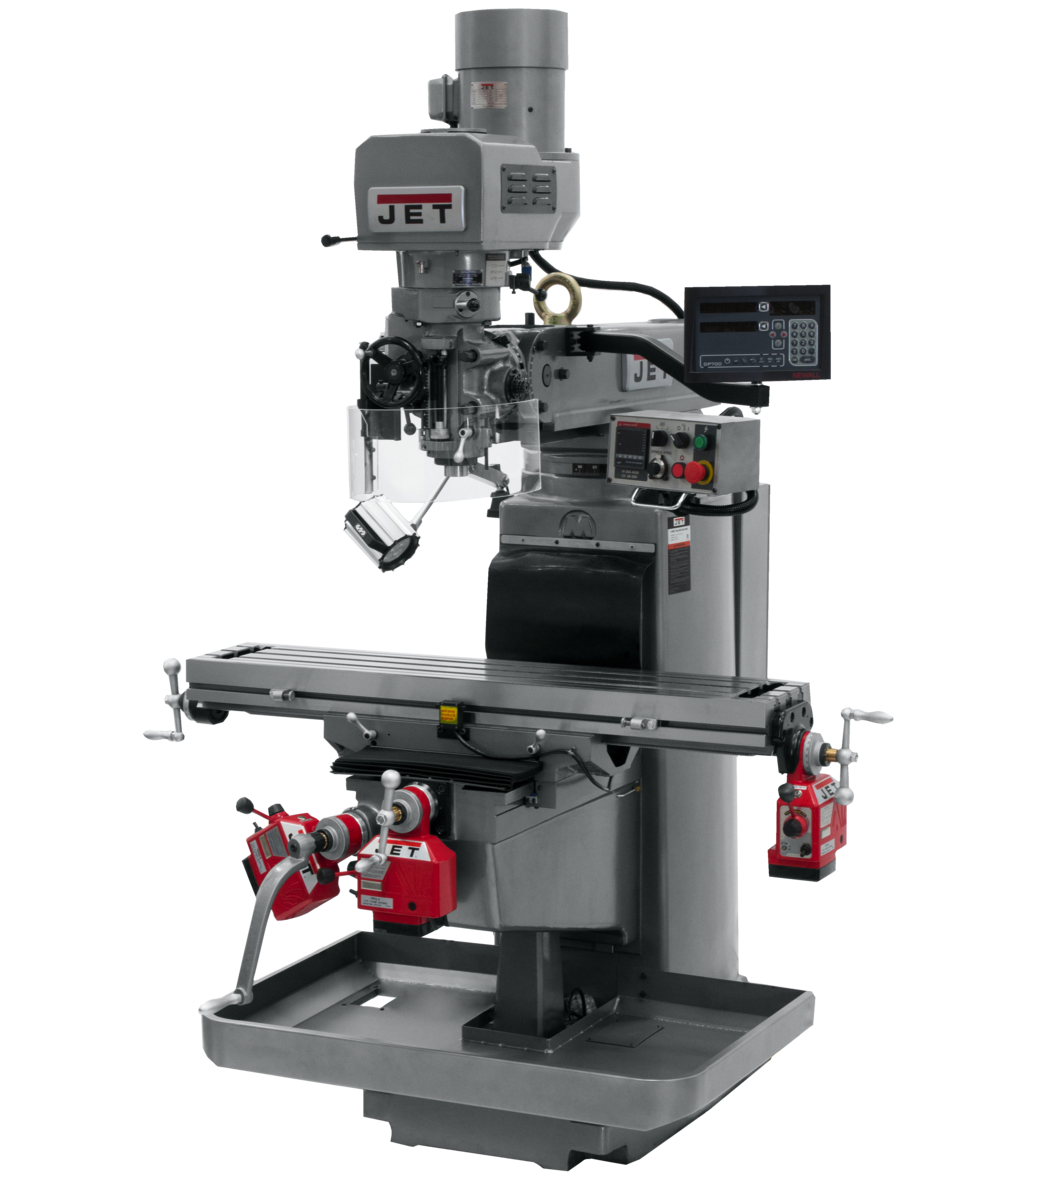 JTM-1050EVS2/230 Mill With 3-Axis Newall DP700 DRO (Quill) With X, Y and Z-Axis Powerfeeds